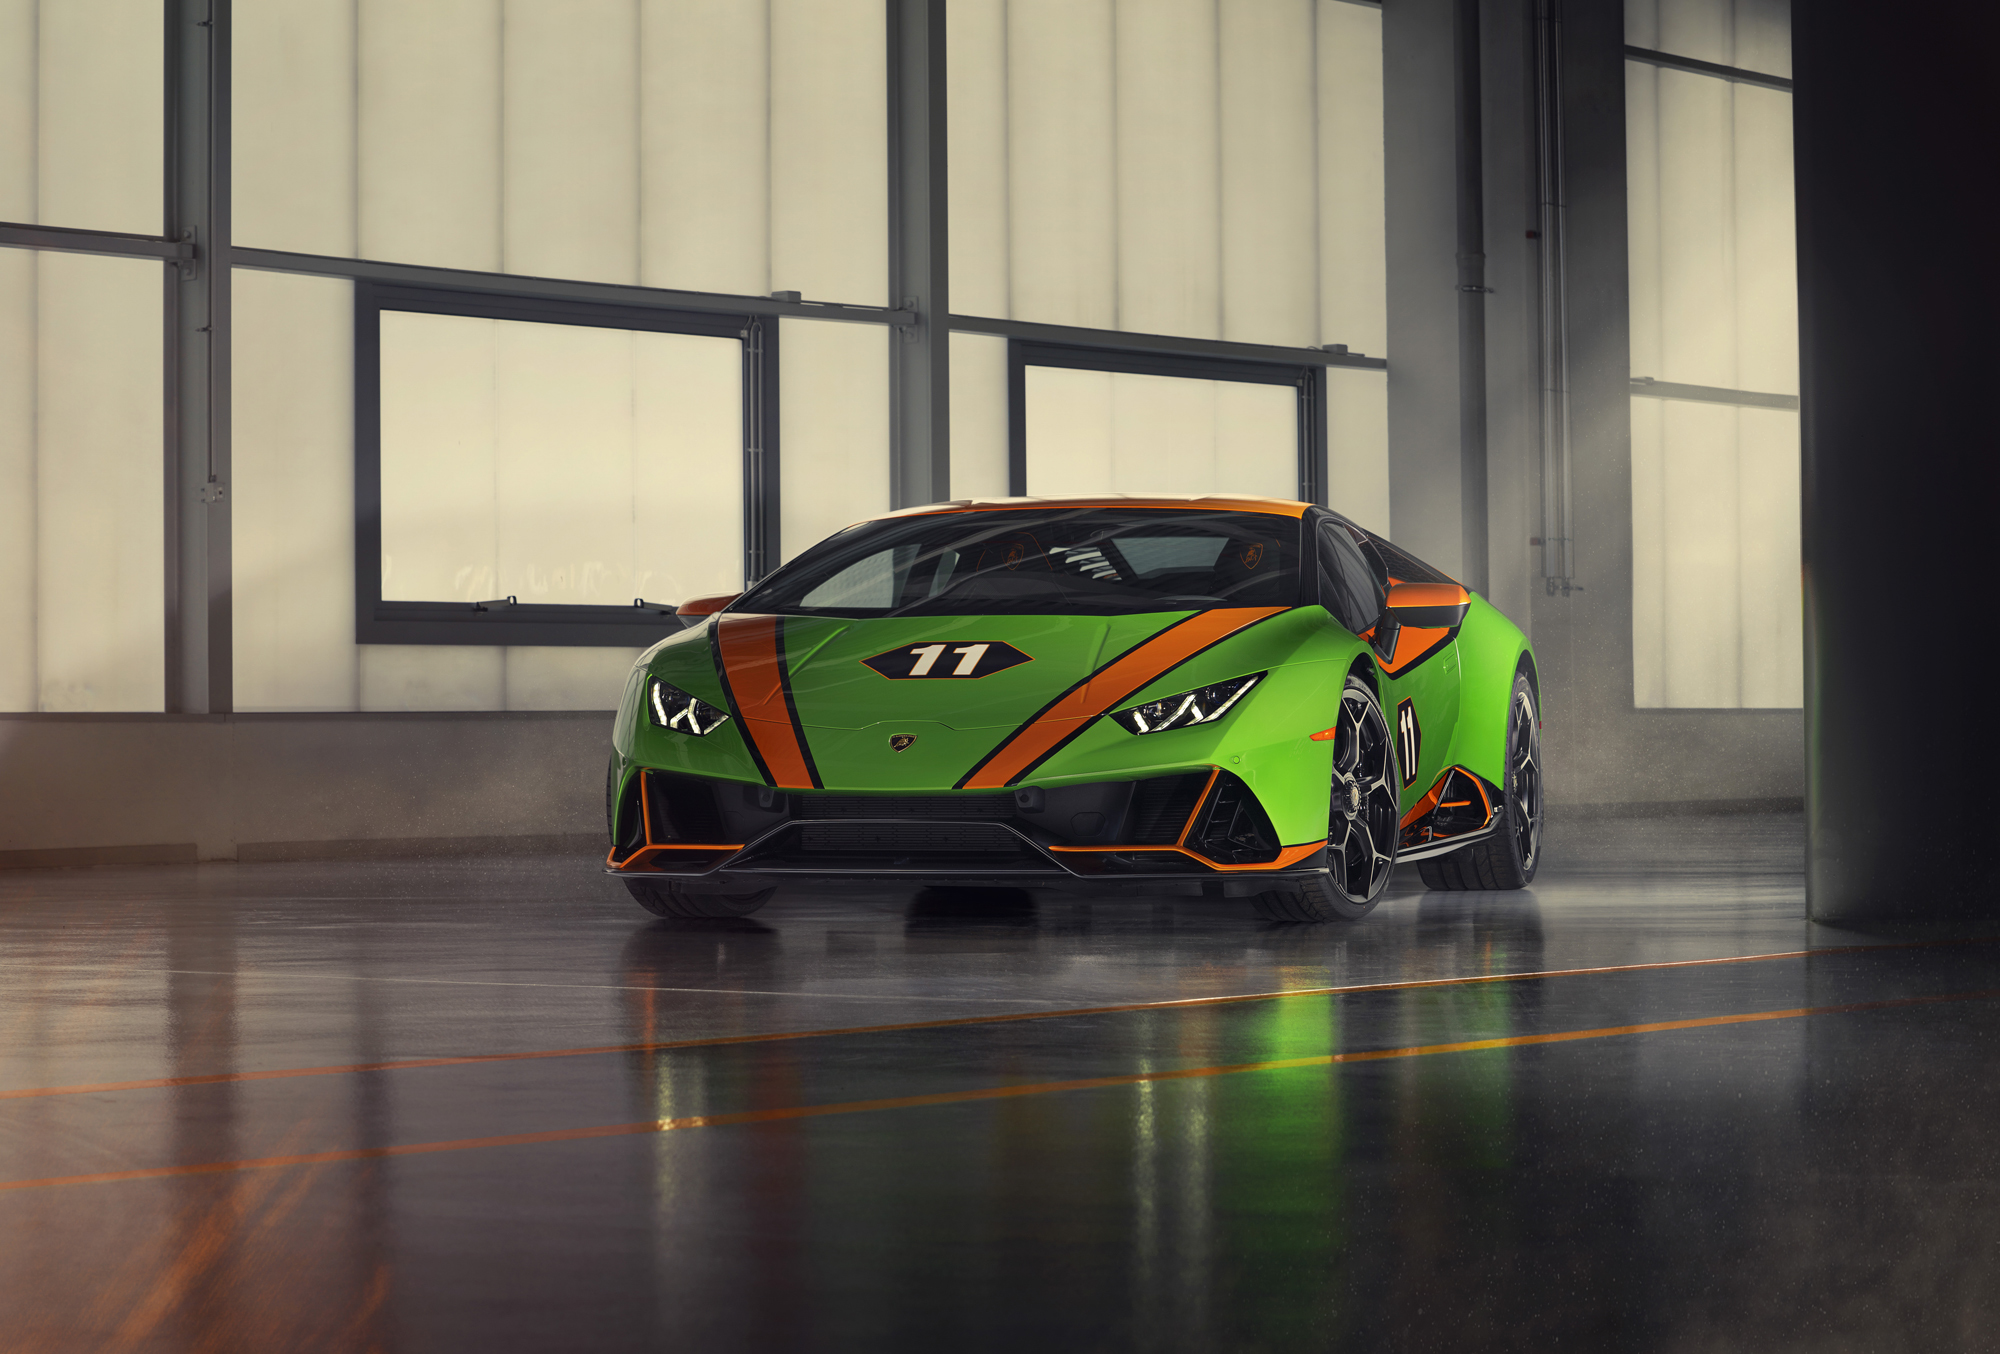 Just as expected, Lamborghini has saved all the truly exciting premieres for the IAA Frankfurt show kicking off on September 12, 2019. The Italian luxury carmaker attended the recently concluded Monterey Car Week with only a couple of special editions.